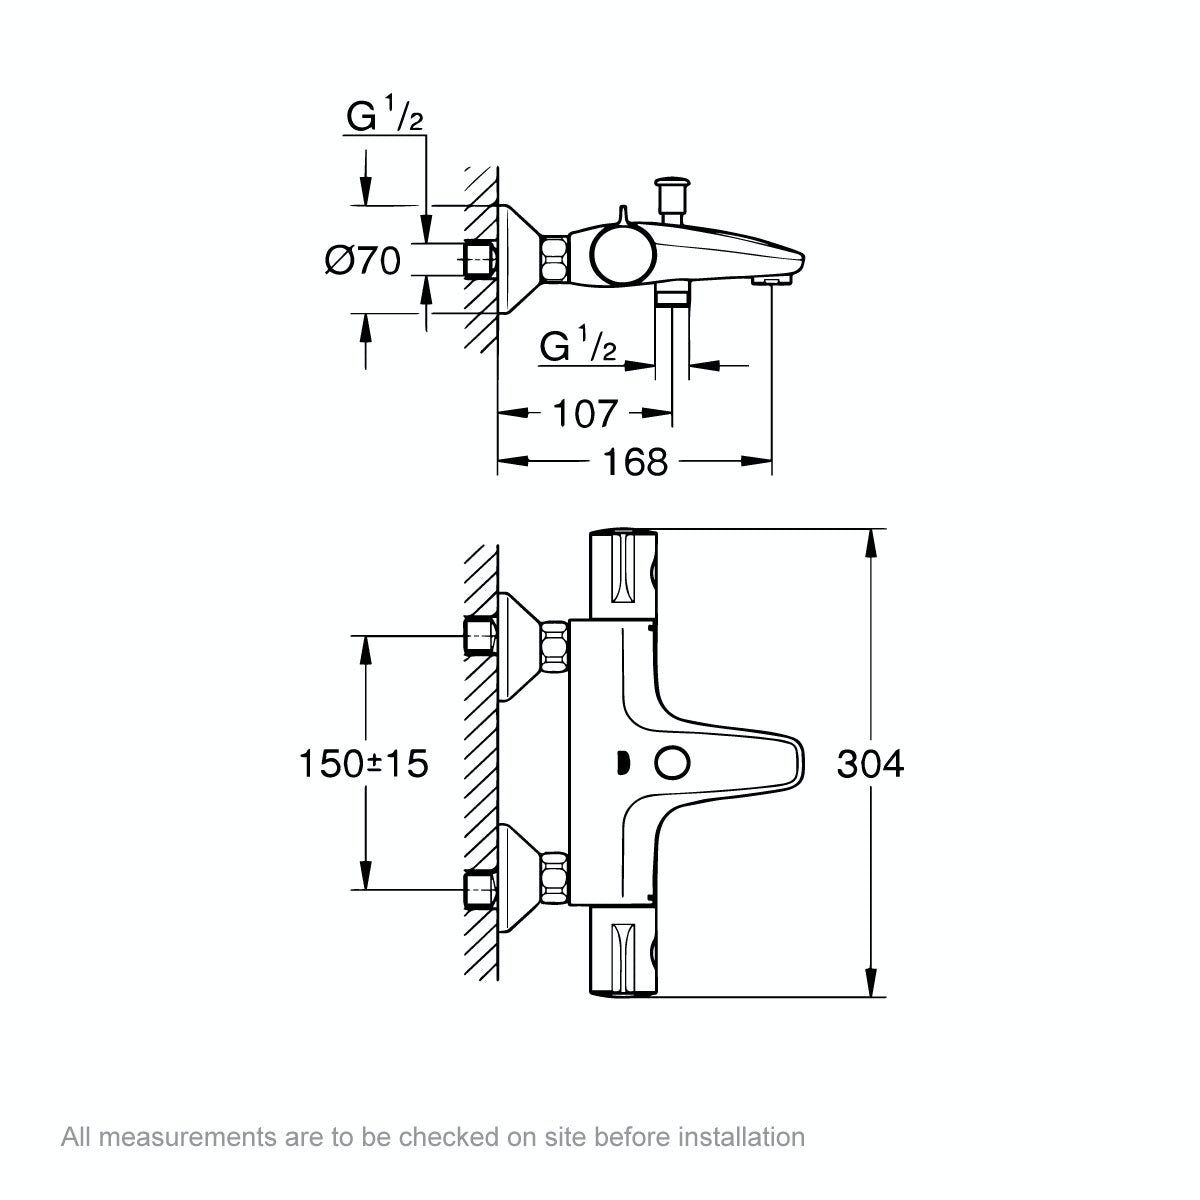 Dimensions for Grohe Grohtherm 800 thermostatic bath shower mixer tap